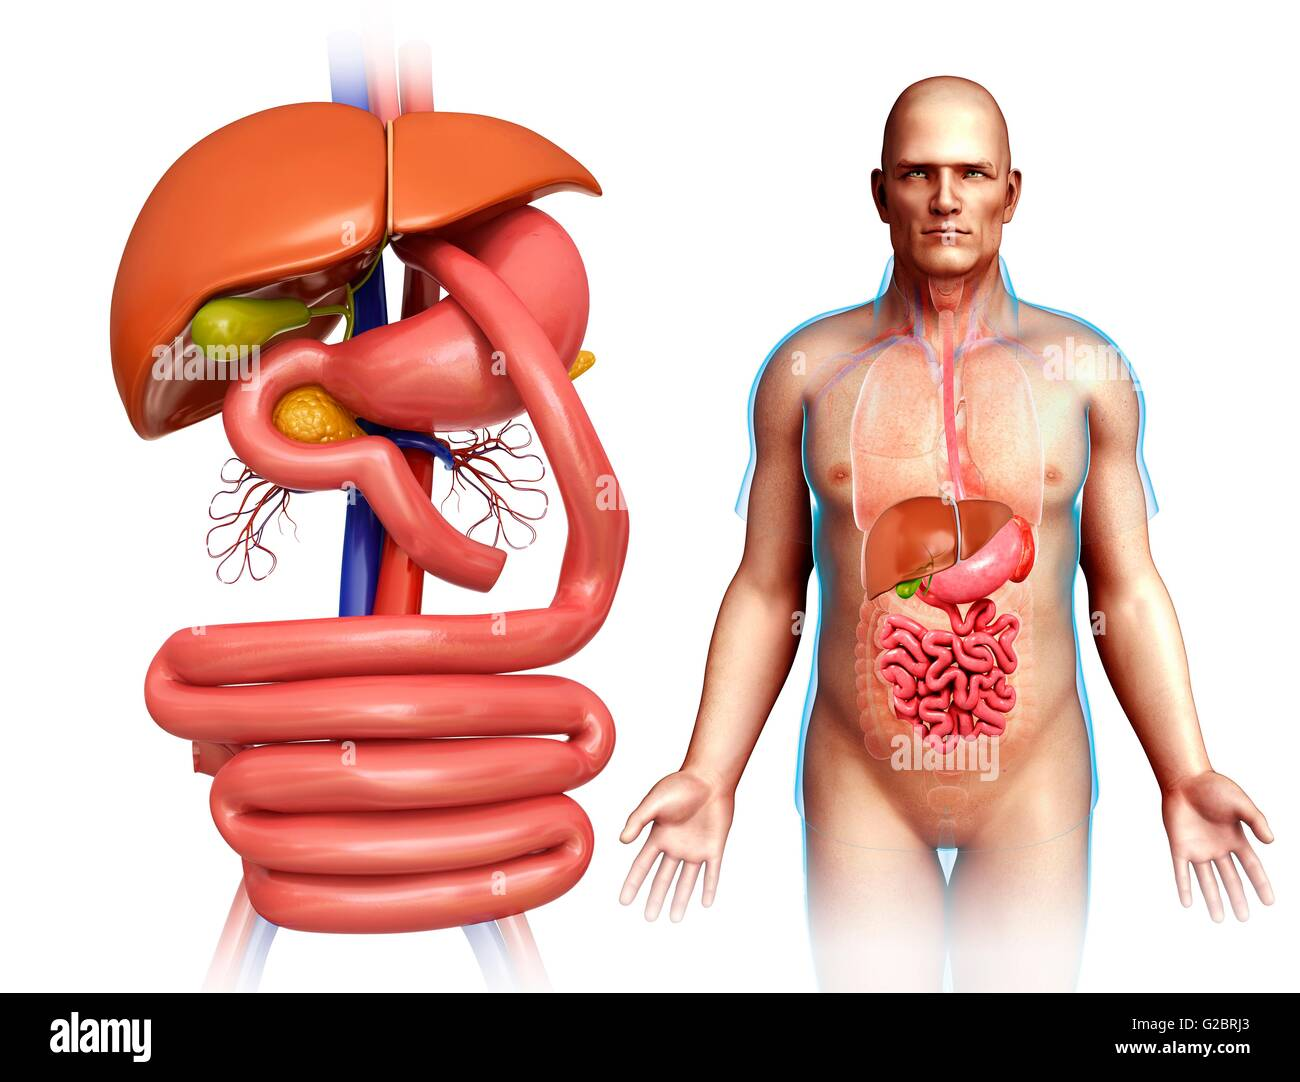 Gastric Bypass Stock Photos & Gastric Bypass Stock Images - Alamy